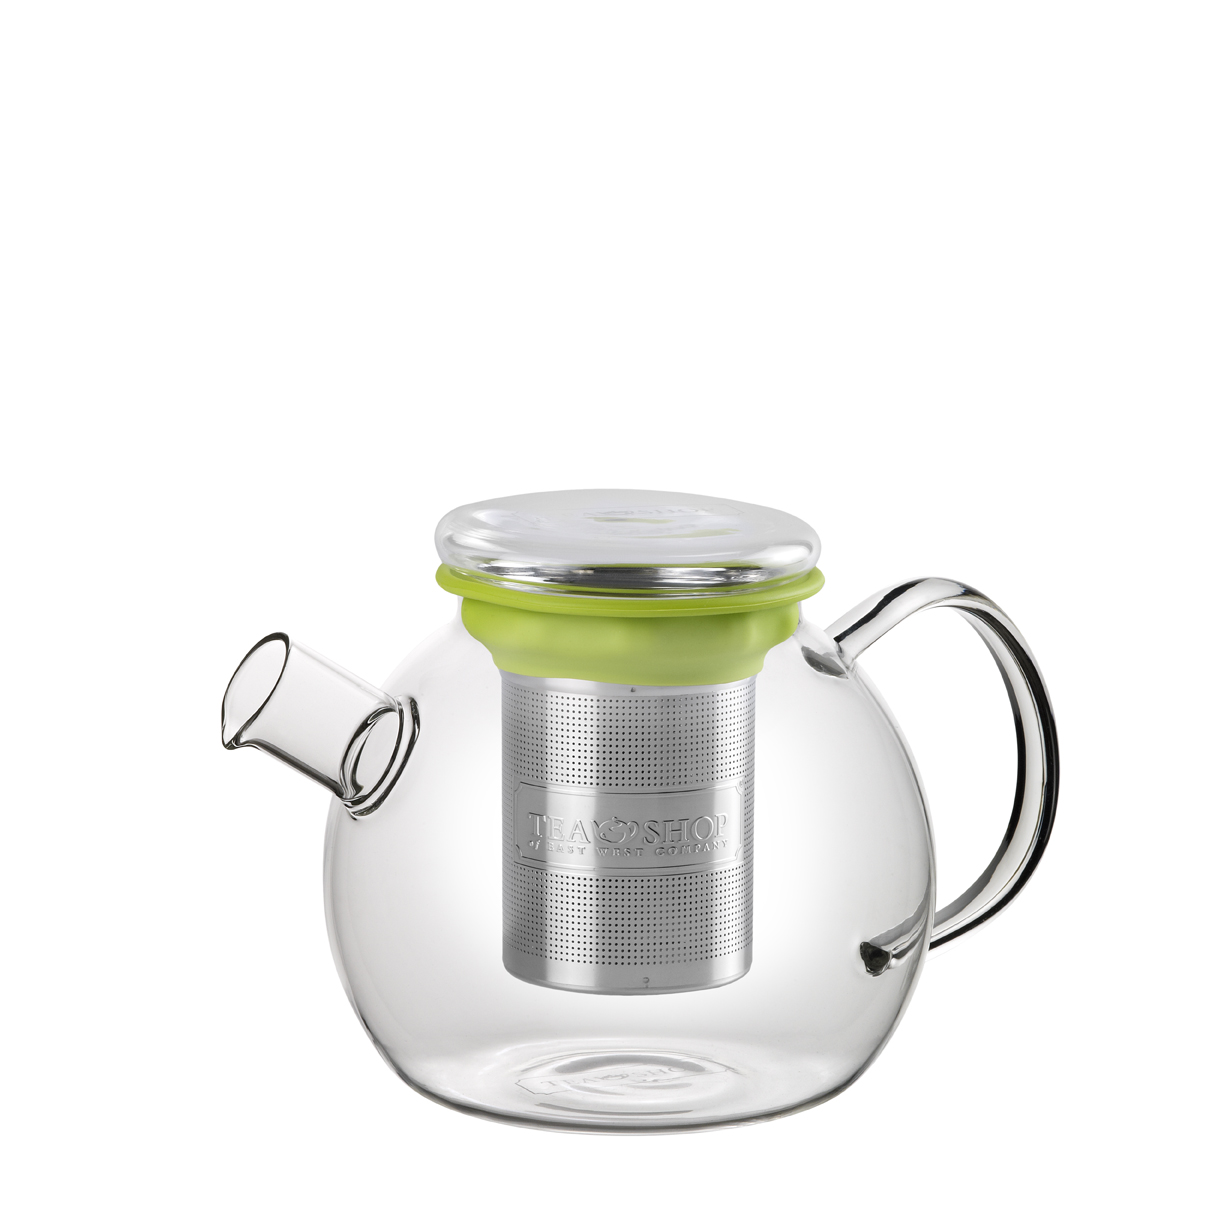 All in One Teapot Green 1l. Teteres de vidre Tea Shop®